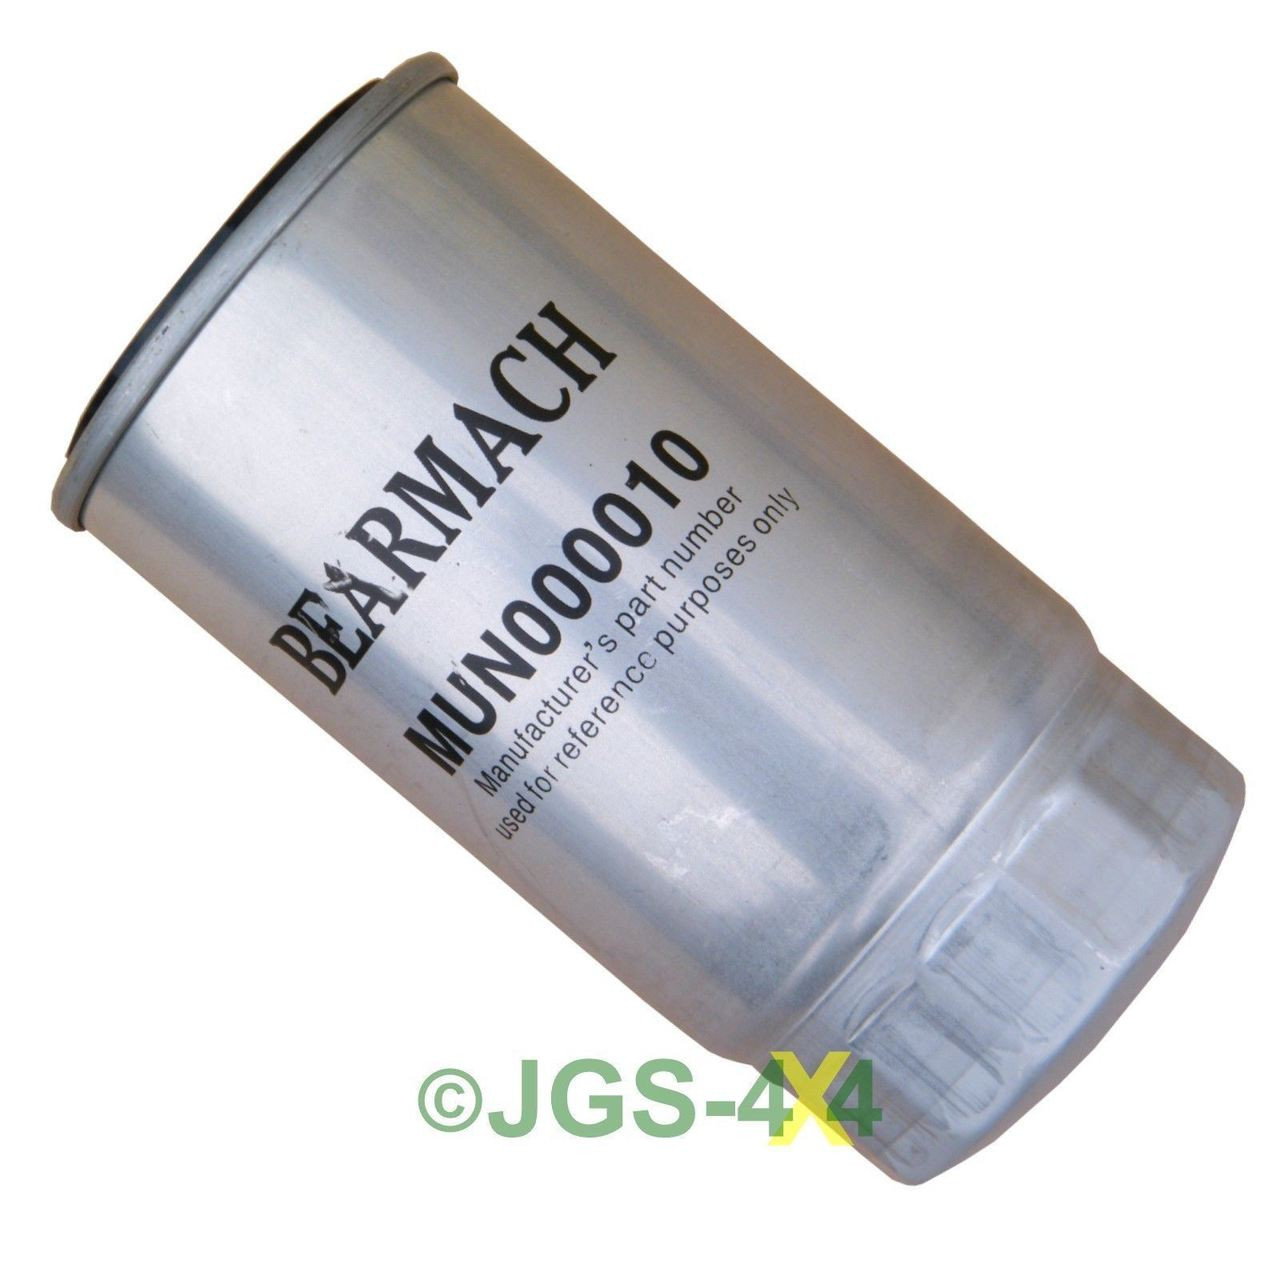 medium resolution of land rover freelander 1 diesel fuel filter 2 0 td4 bmw engine mun000010